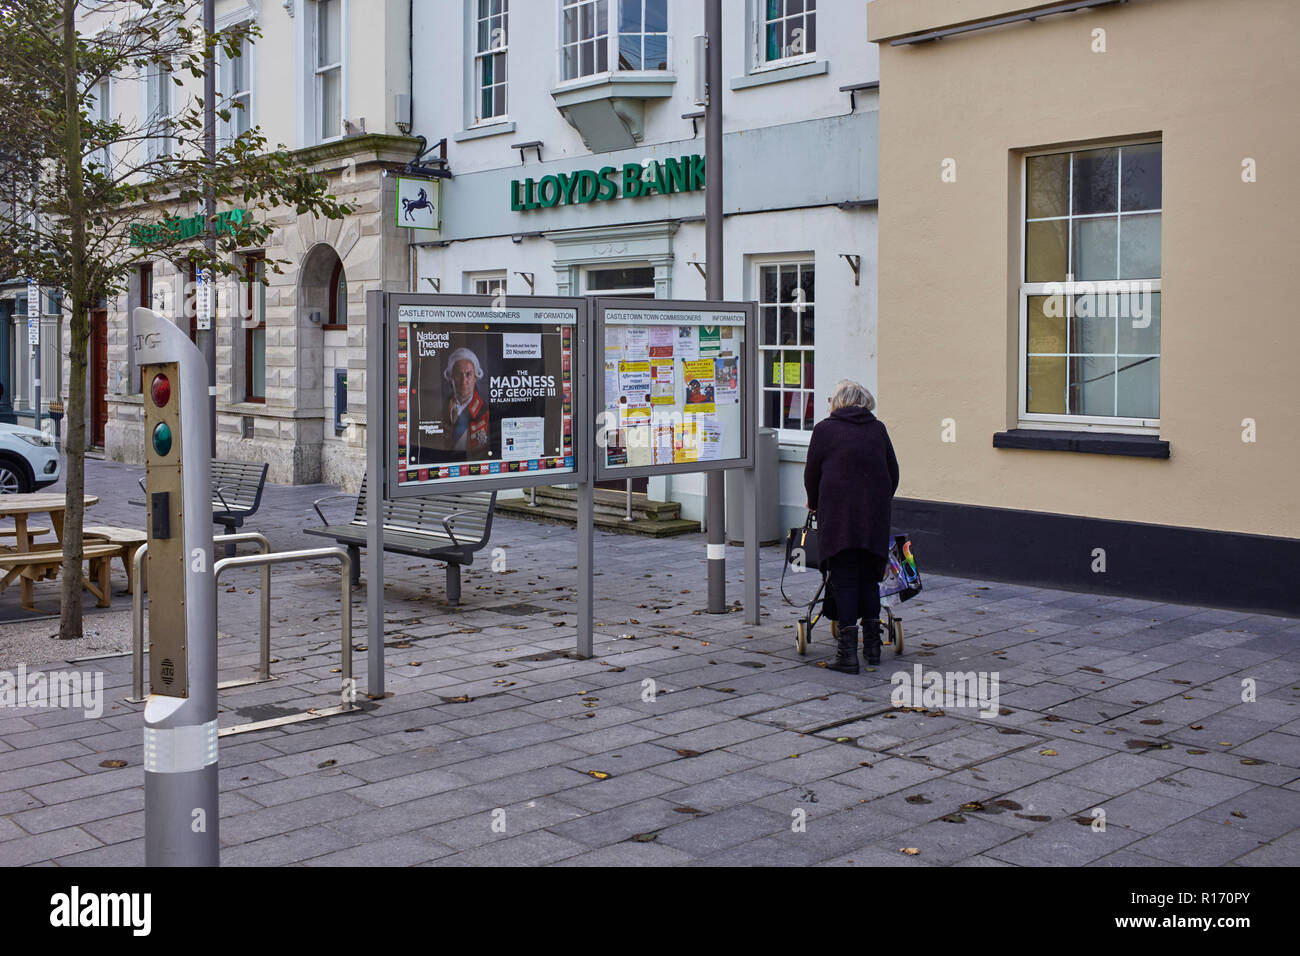 Older woman using a walker passes the town notice board at Castletown, Isle of Man - Stock Image